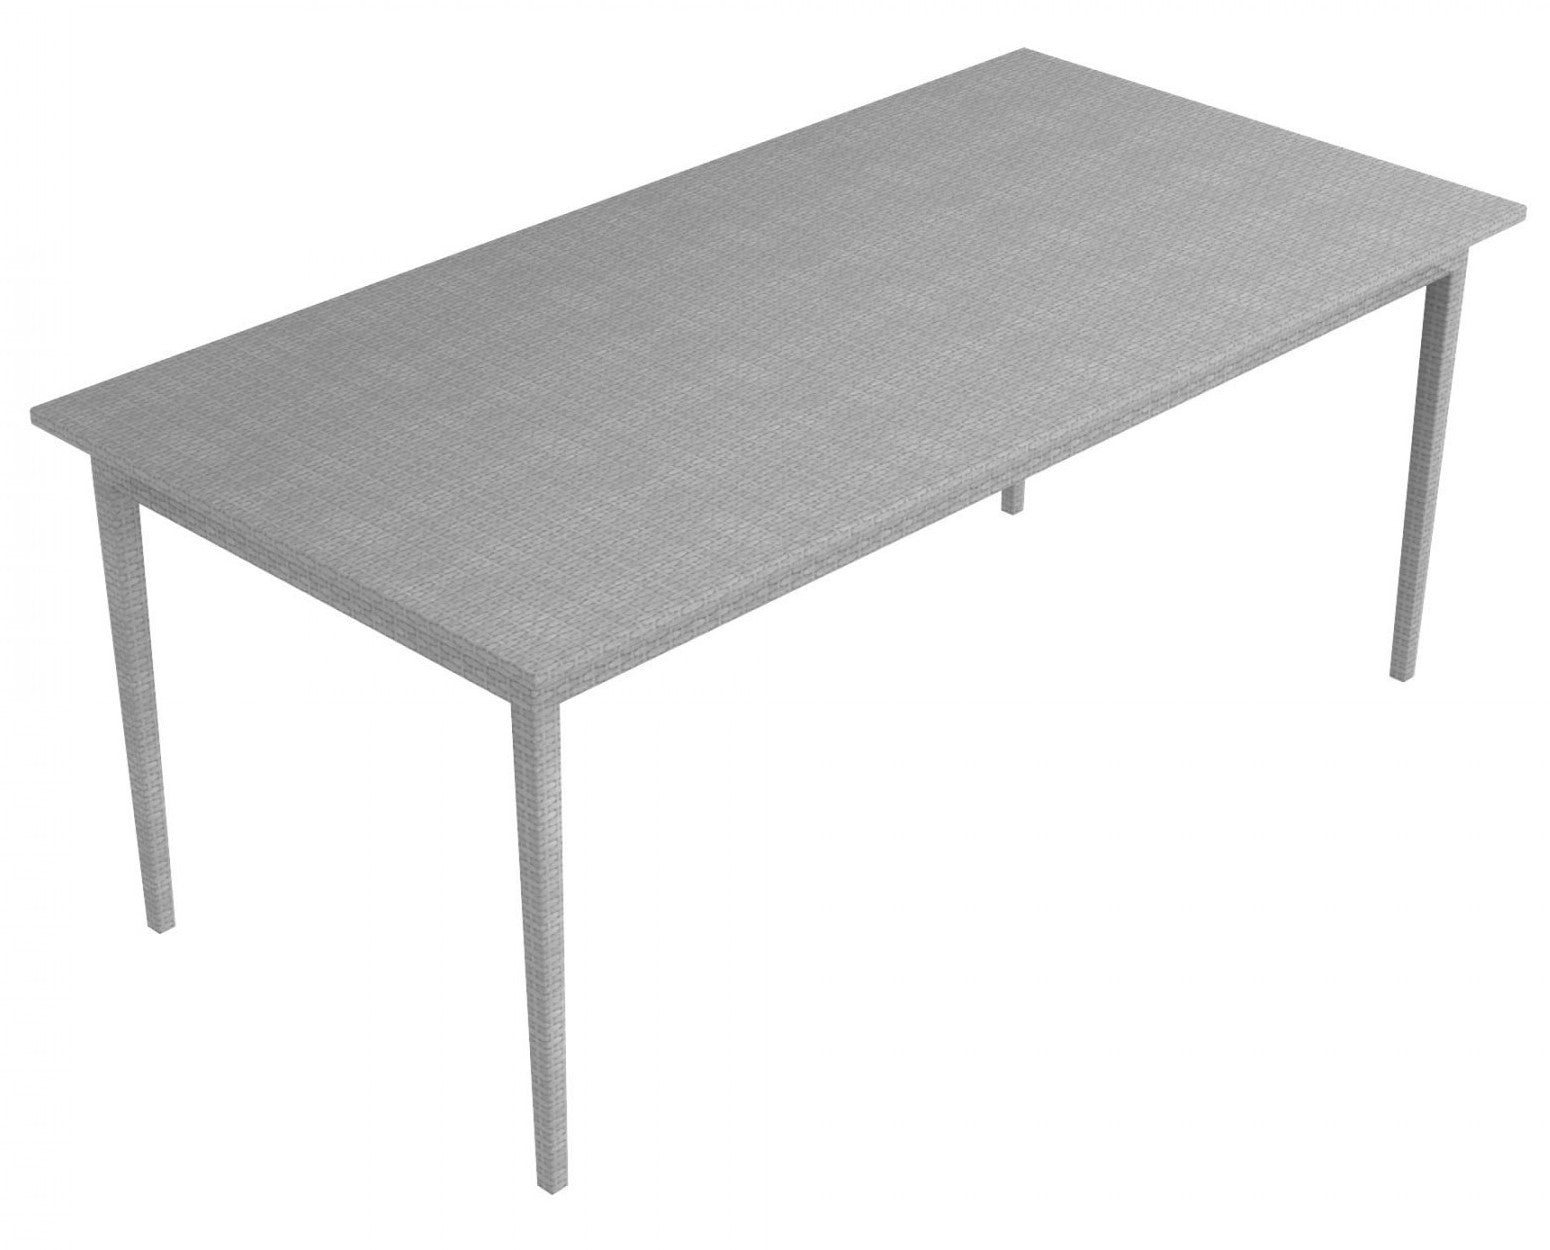 Sunlace WaProLace rectangular table 90 x 180 cm